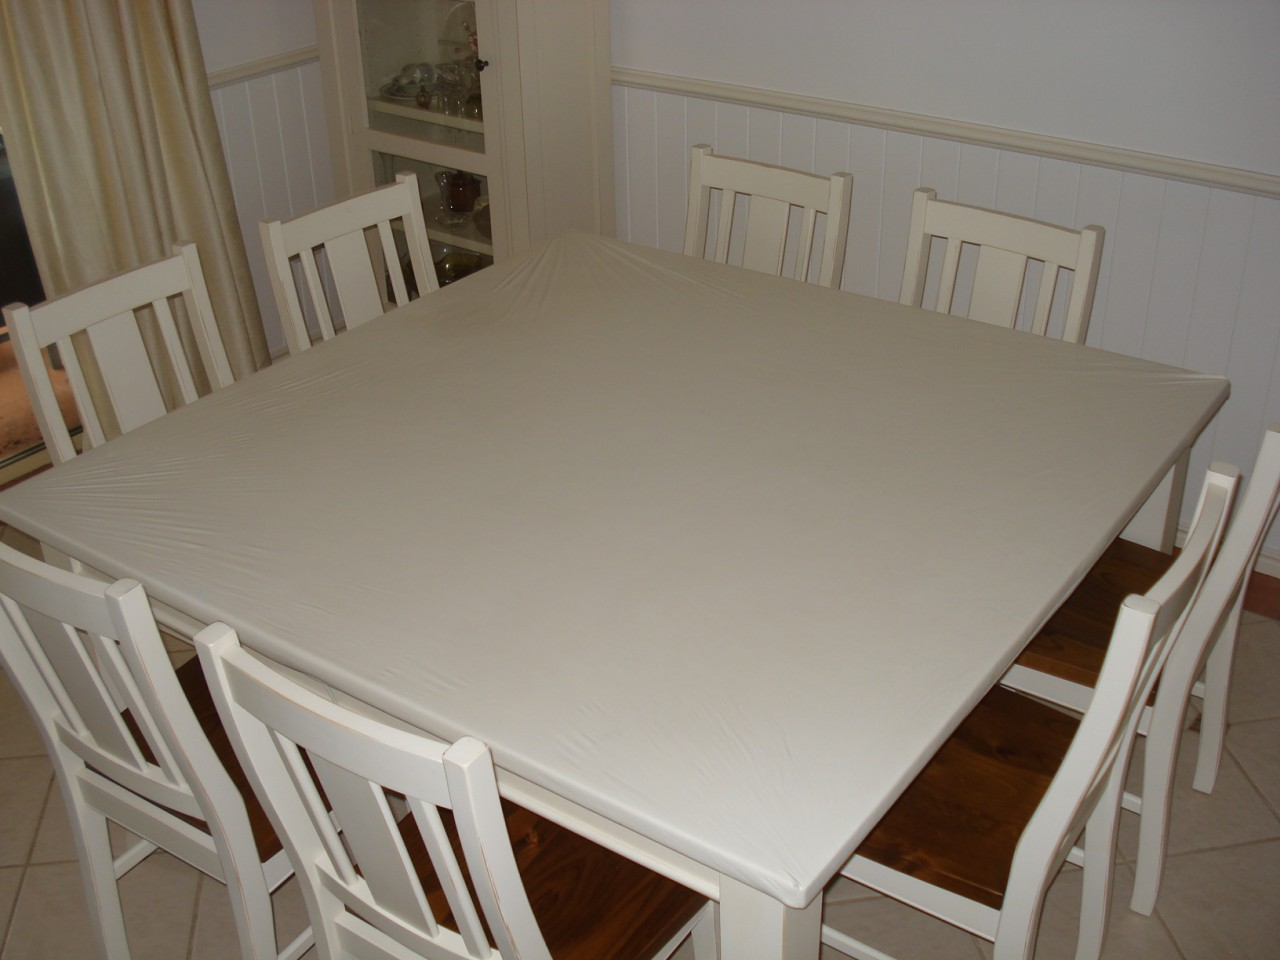 Square 150cm Kitchen Living Dining Table Top Protector Cover White